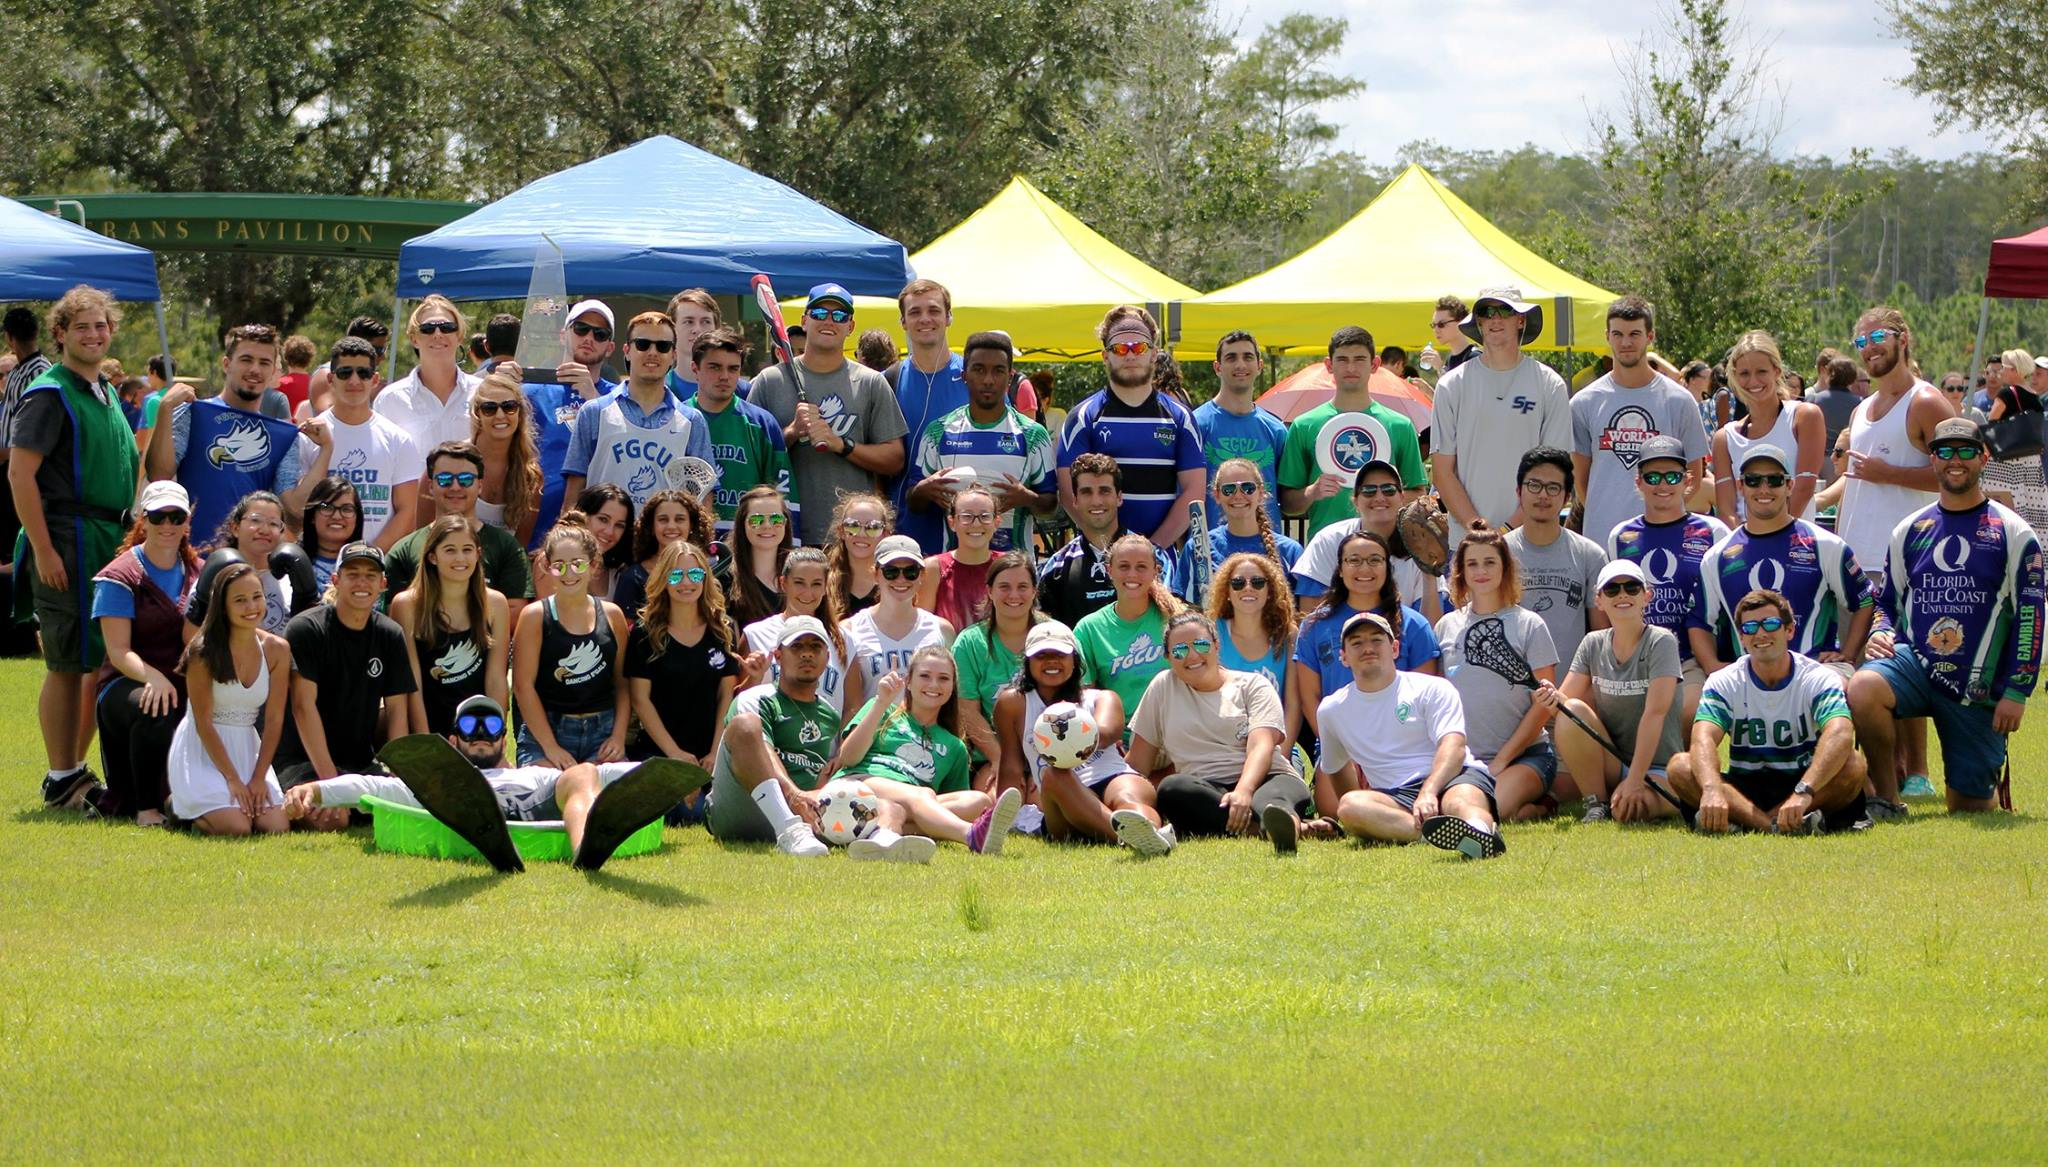 2017 All Sport Club Group Photo